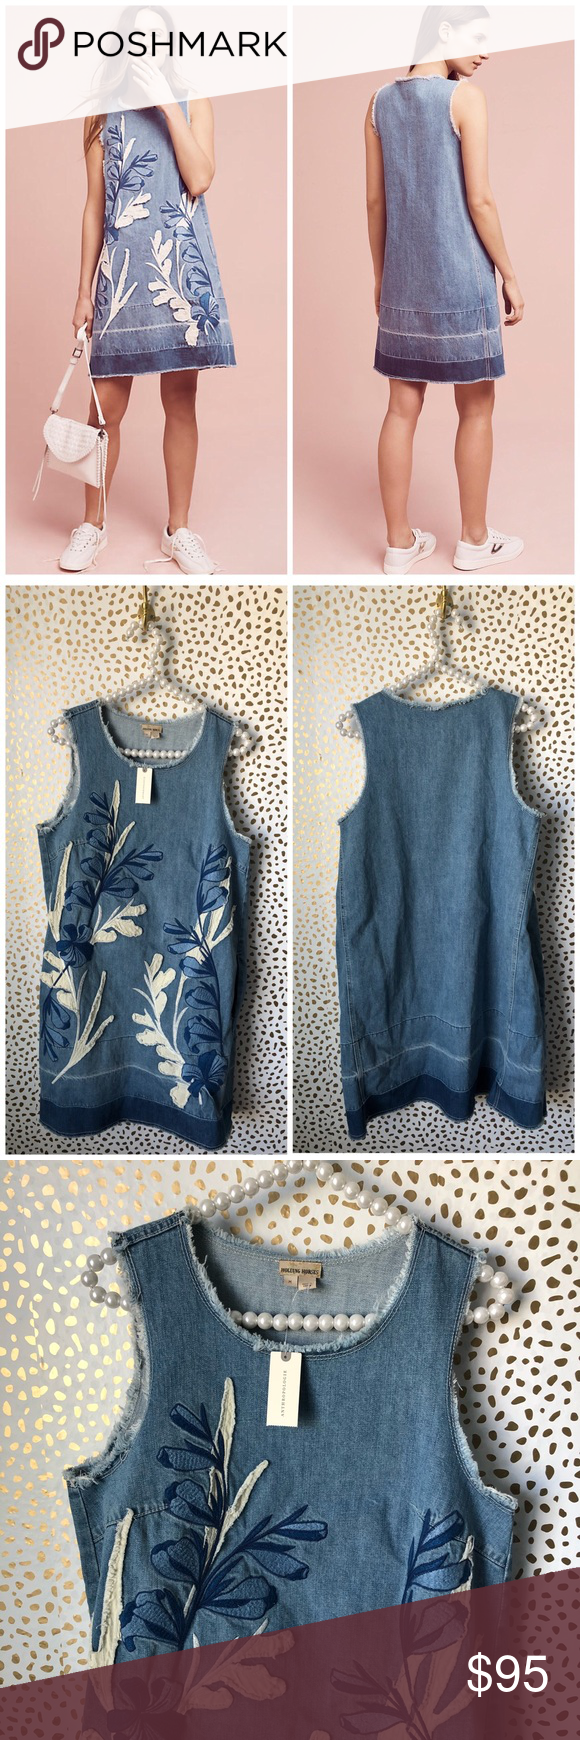 a34cf9c00b4 Anthropologie Holding Horses Denim Leaves Dress Brand new with tags! Size  medium. Embroidered leaf shift dress with fringe. Denim chambray.  Sleeveless.